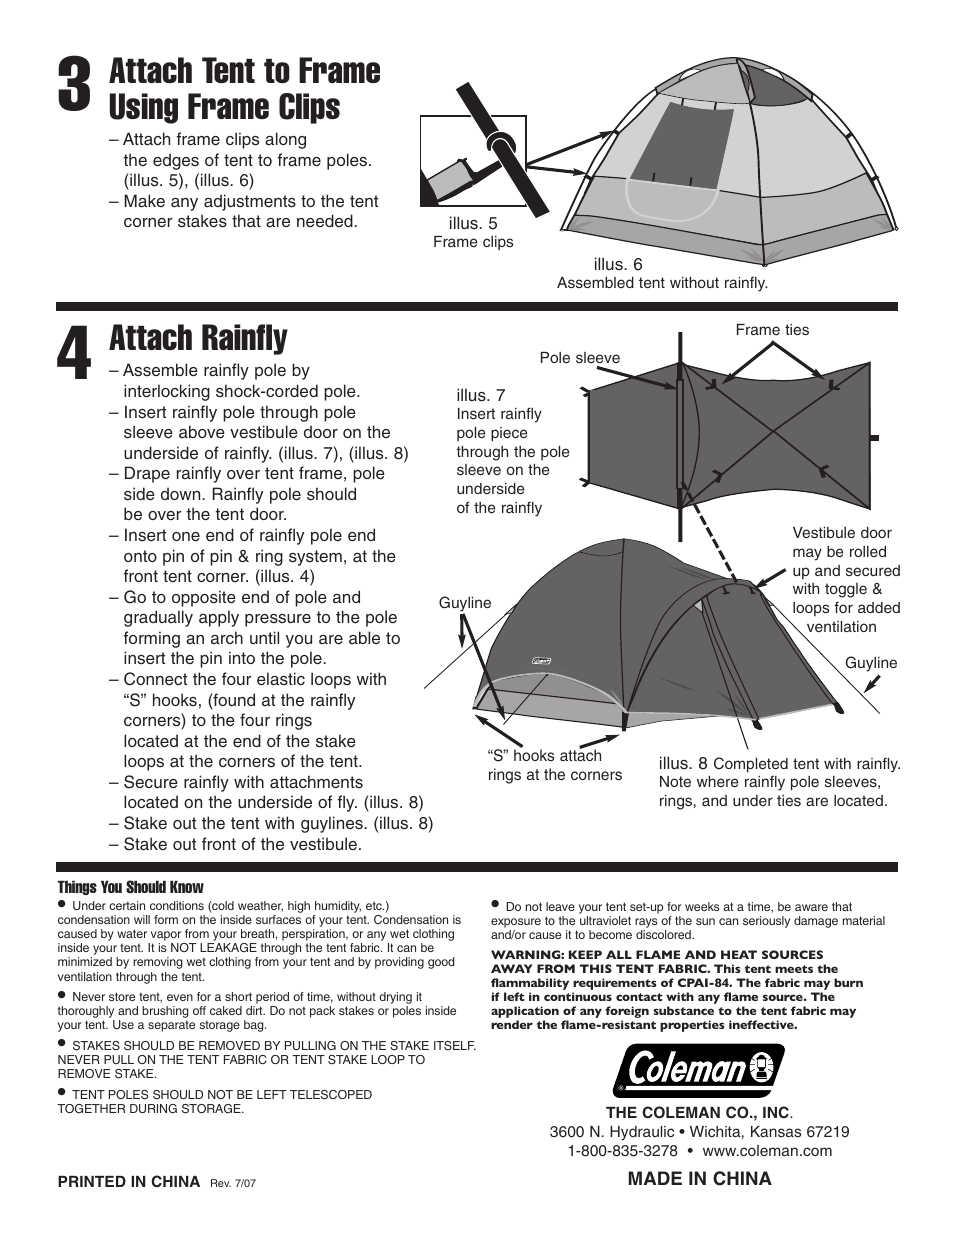 Coleman User Manual Daily Instruction Manual Guides